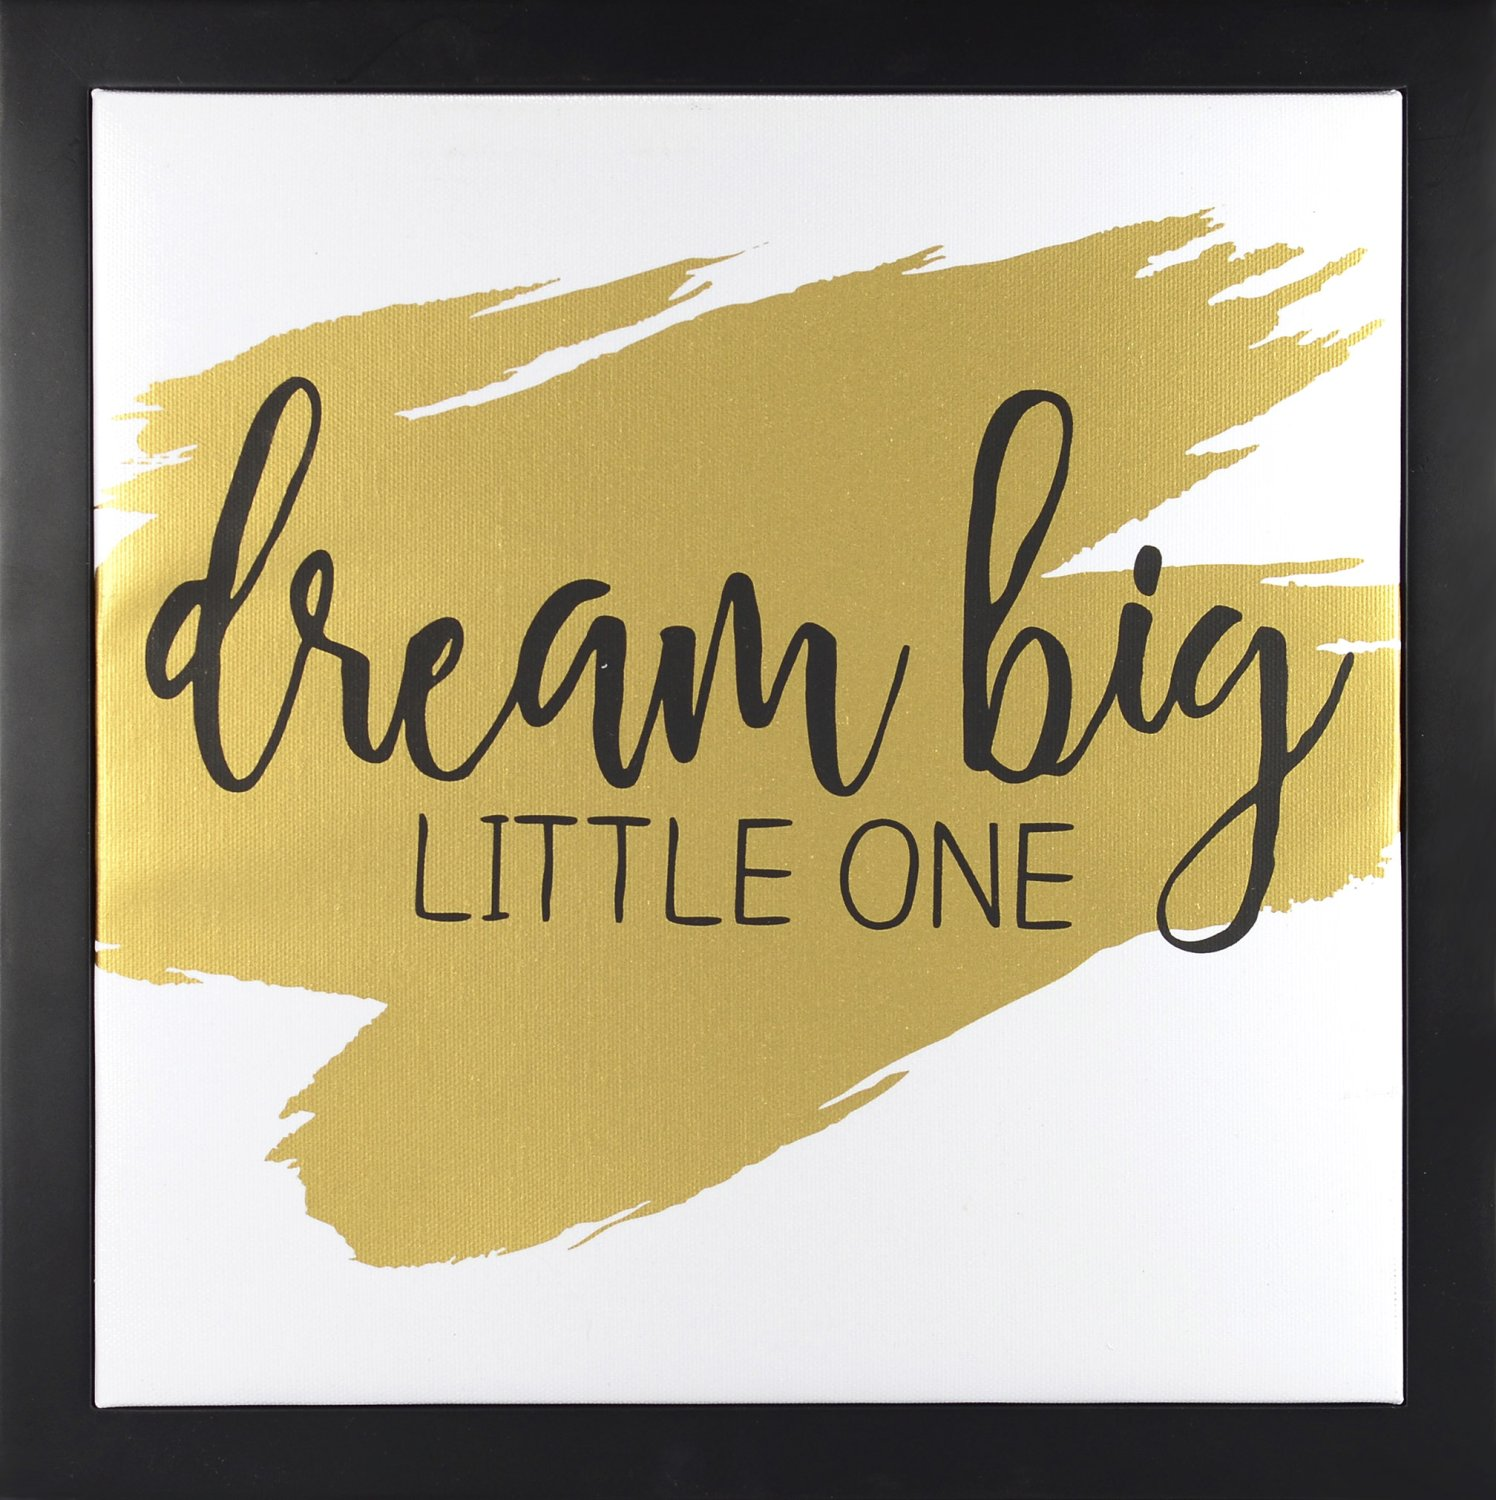 Linden Ave Wall Décor AVE10051 Dream Big Little One Gold